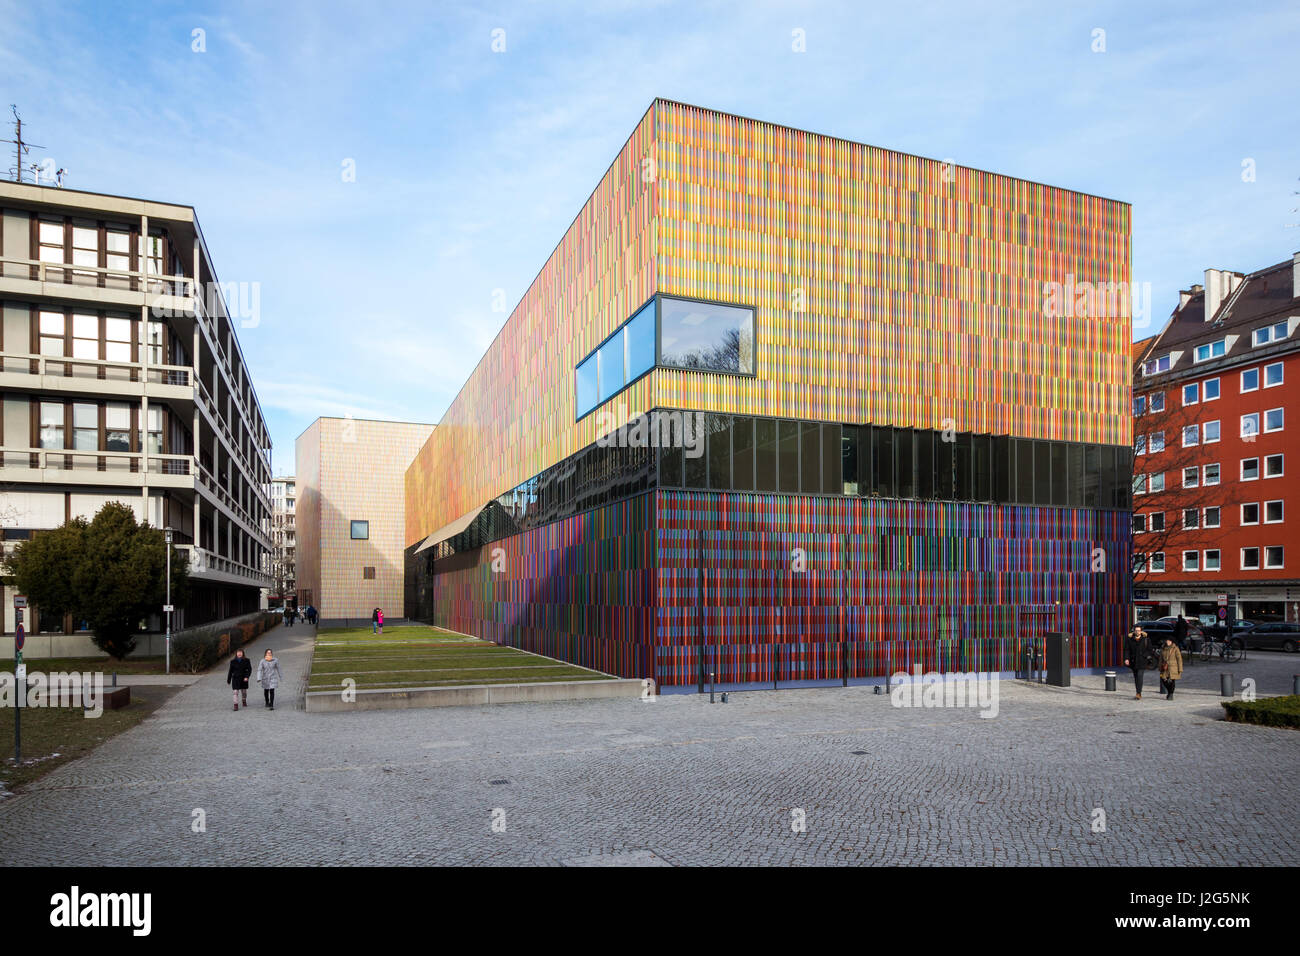 Munich, 5th February 2071: Museum Brandhorst Art collection exhibition building on a clear, sunny winter's day. - Stock Image